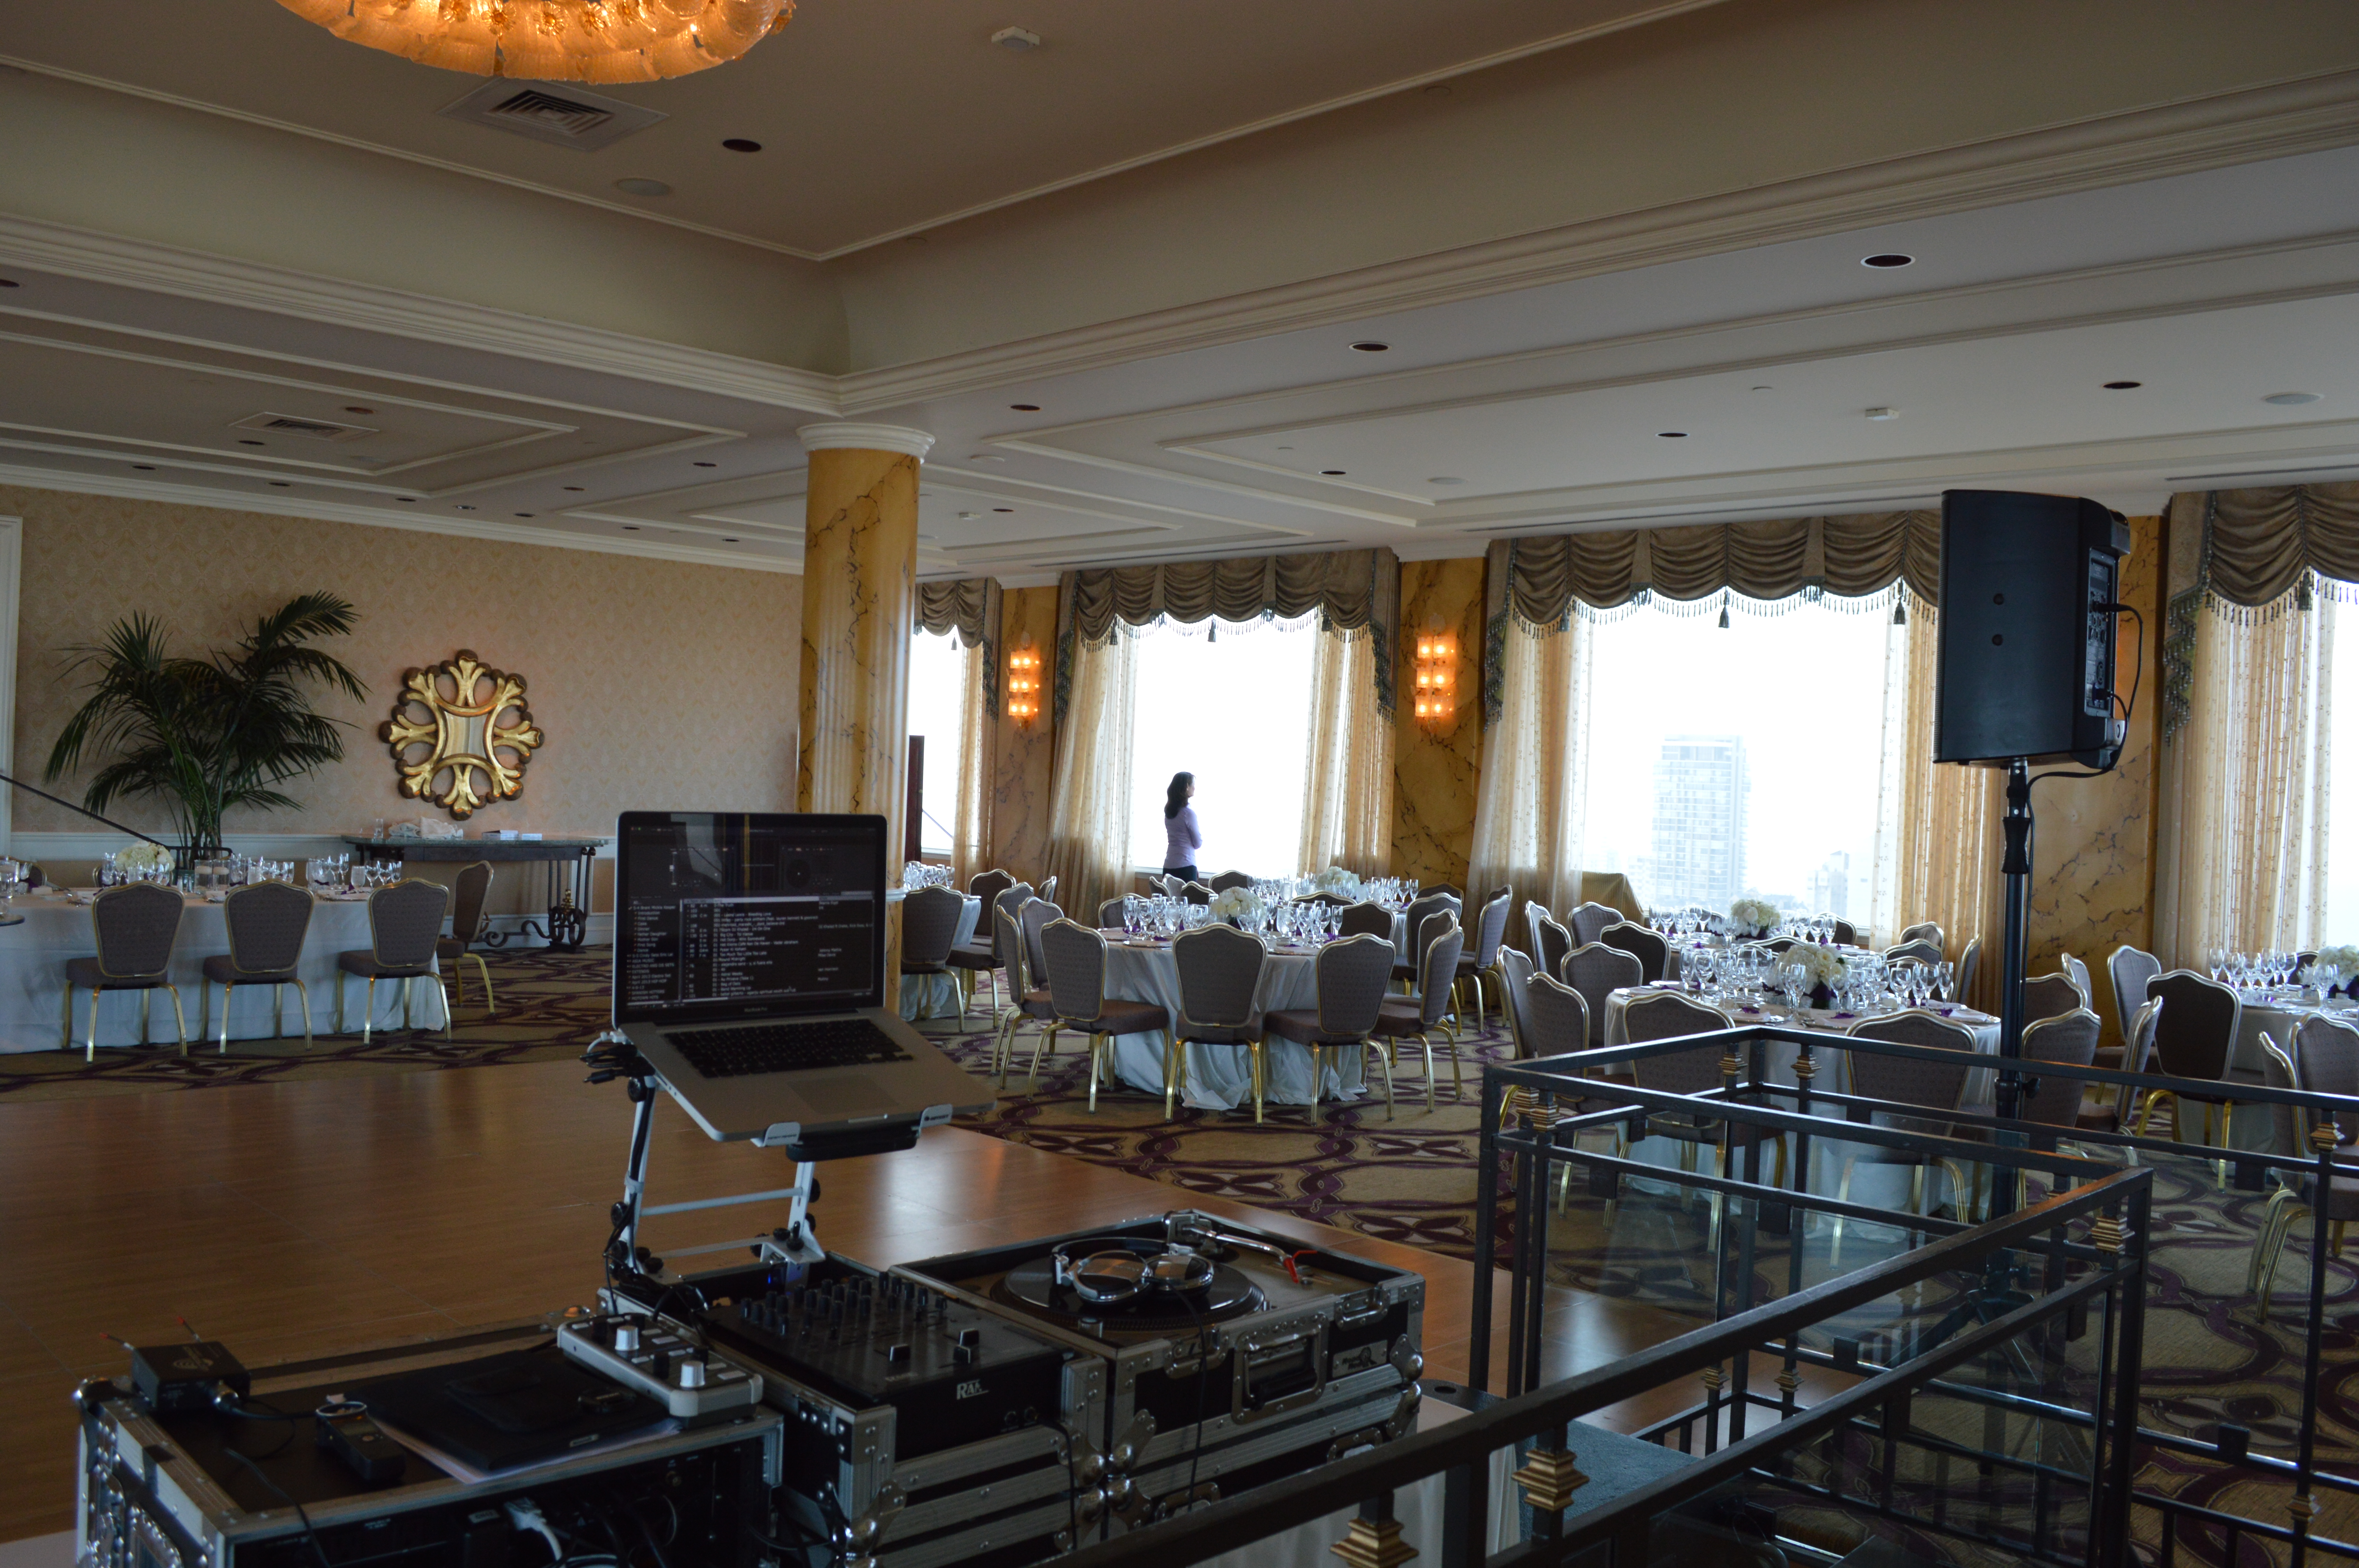 Fairmont Hotel Crown Room Wedding Setup Photo Dj Jeremy